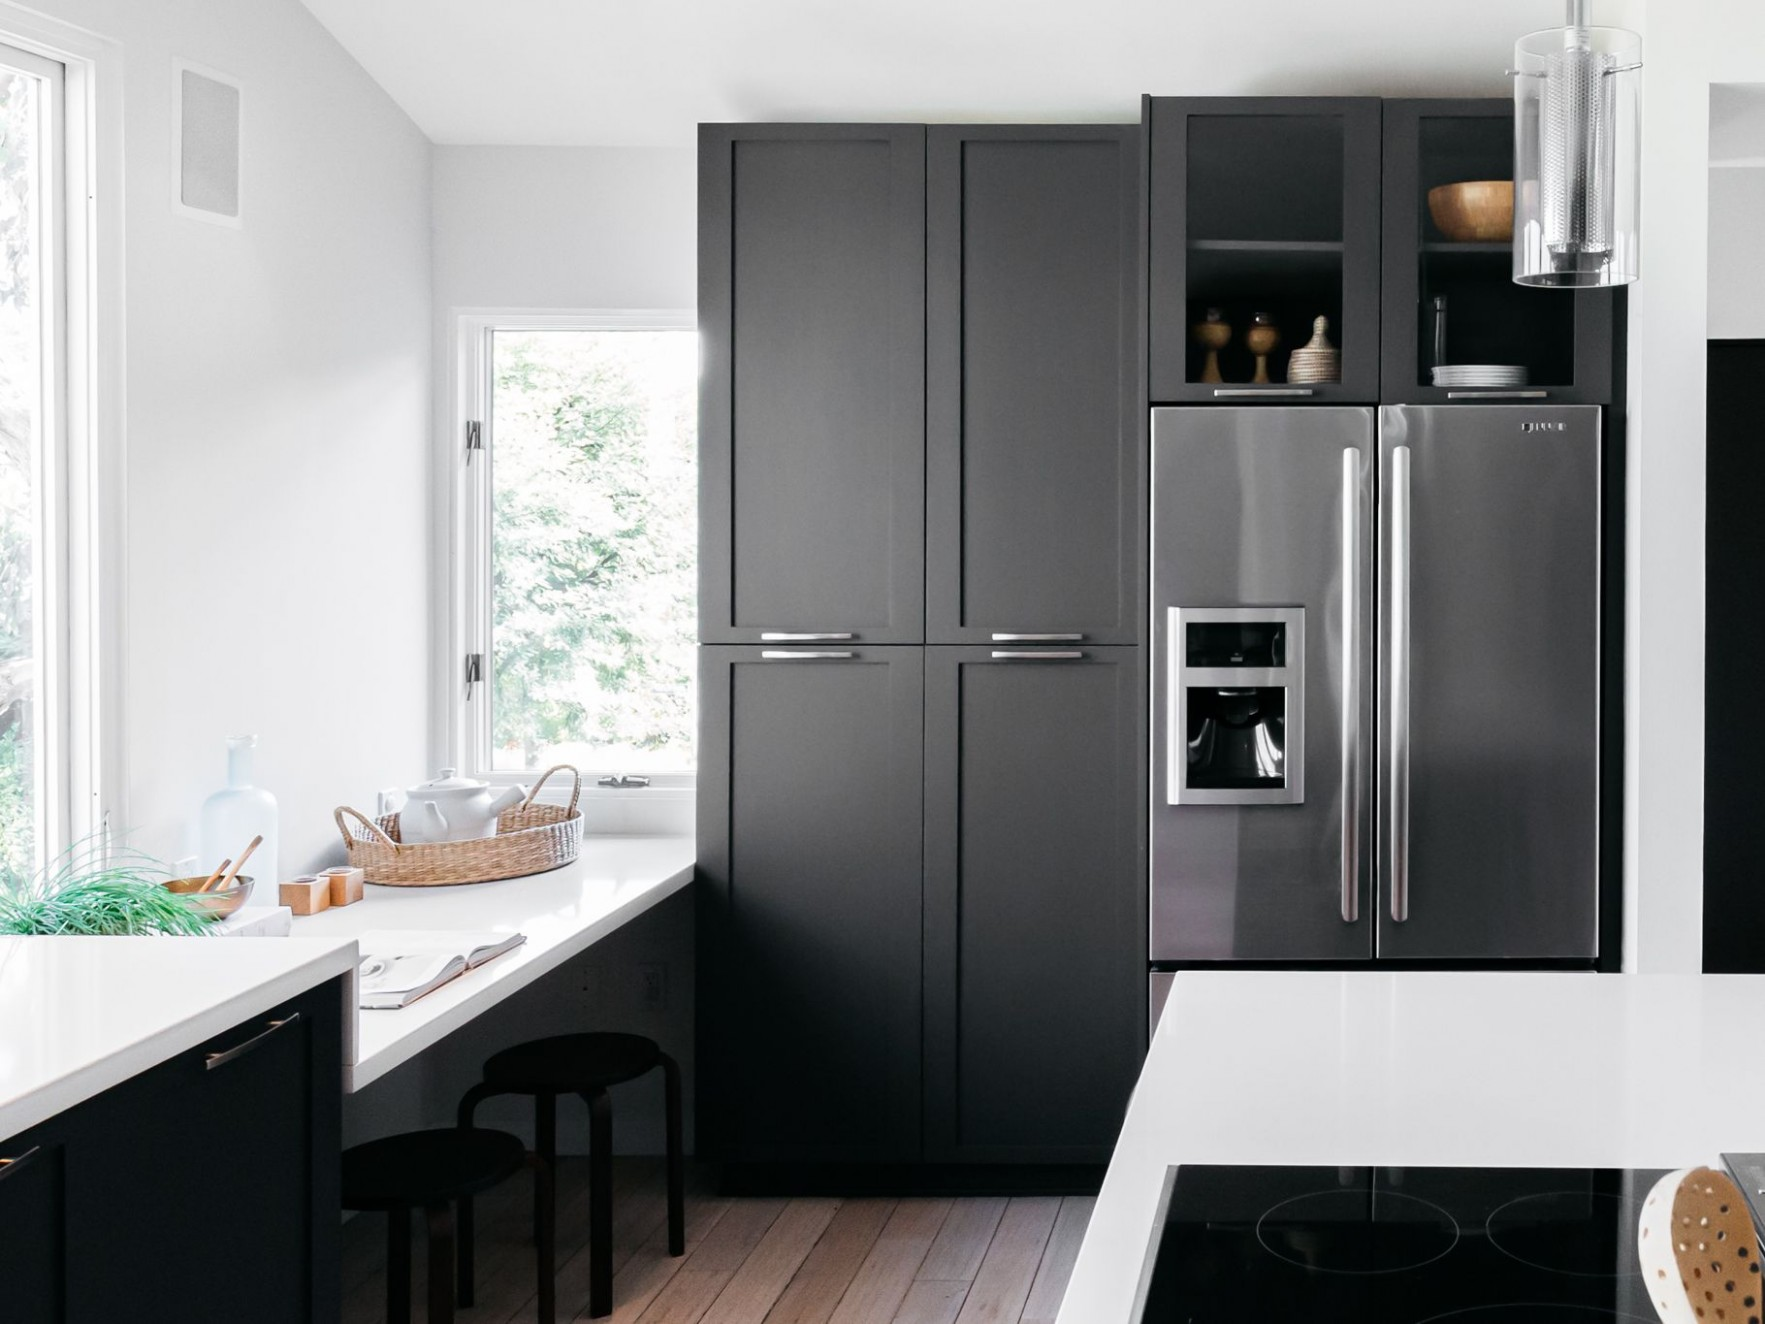 Counter Depth Refrigerator Dimensions - What You Need to Know - Kitchen Cabinet Dimensions Refrigerator